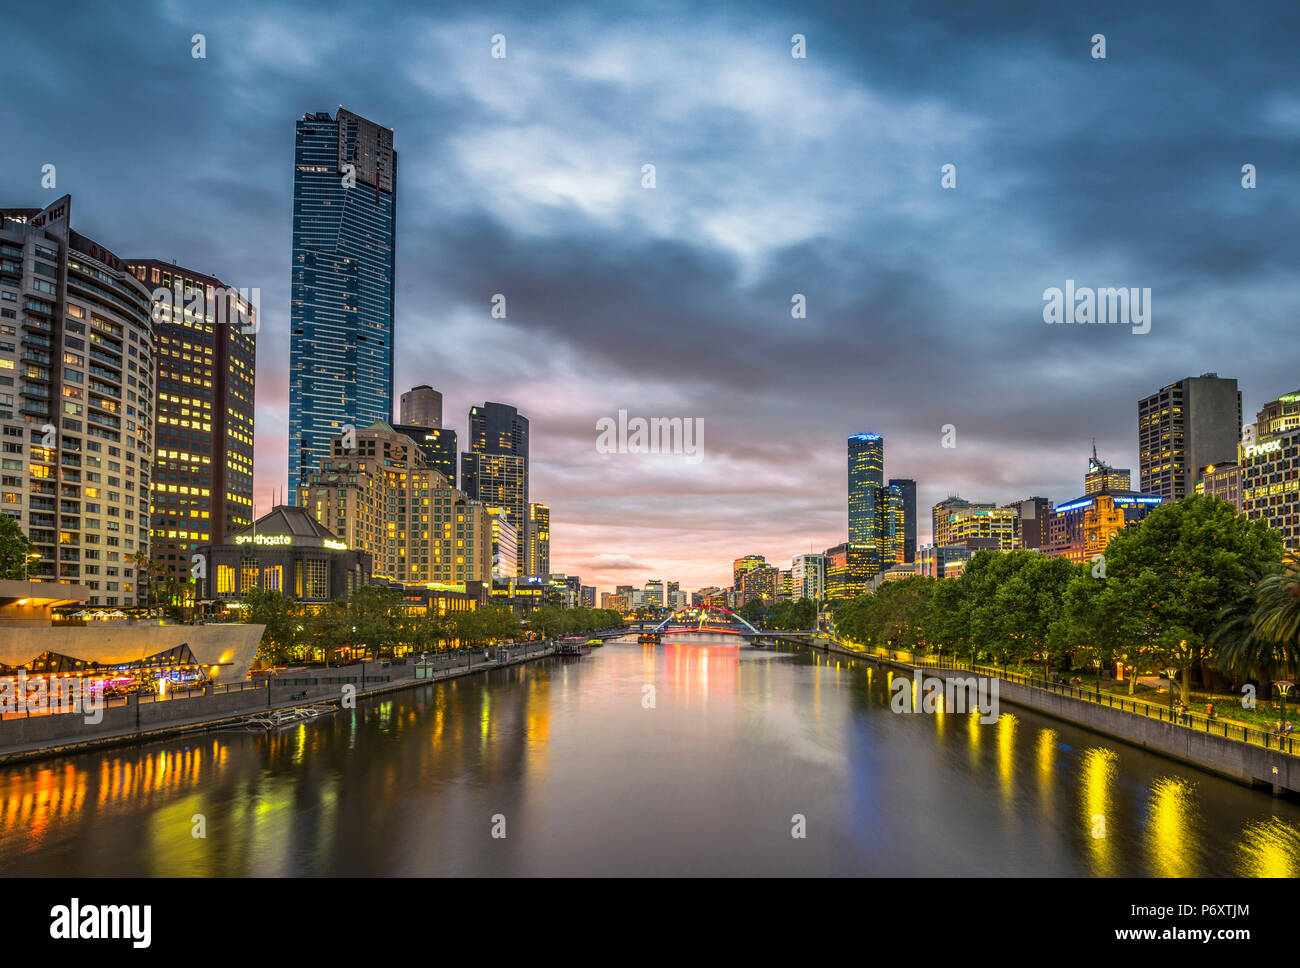 Melbourne, Victoria, Australia. Cityscape with Eureka Tower from the Yarra river at dusk. - Stock Image